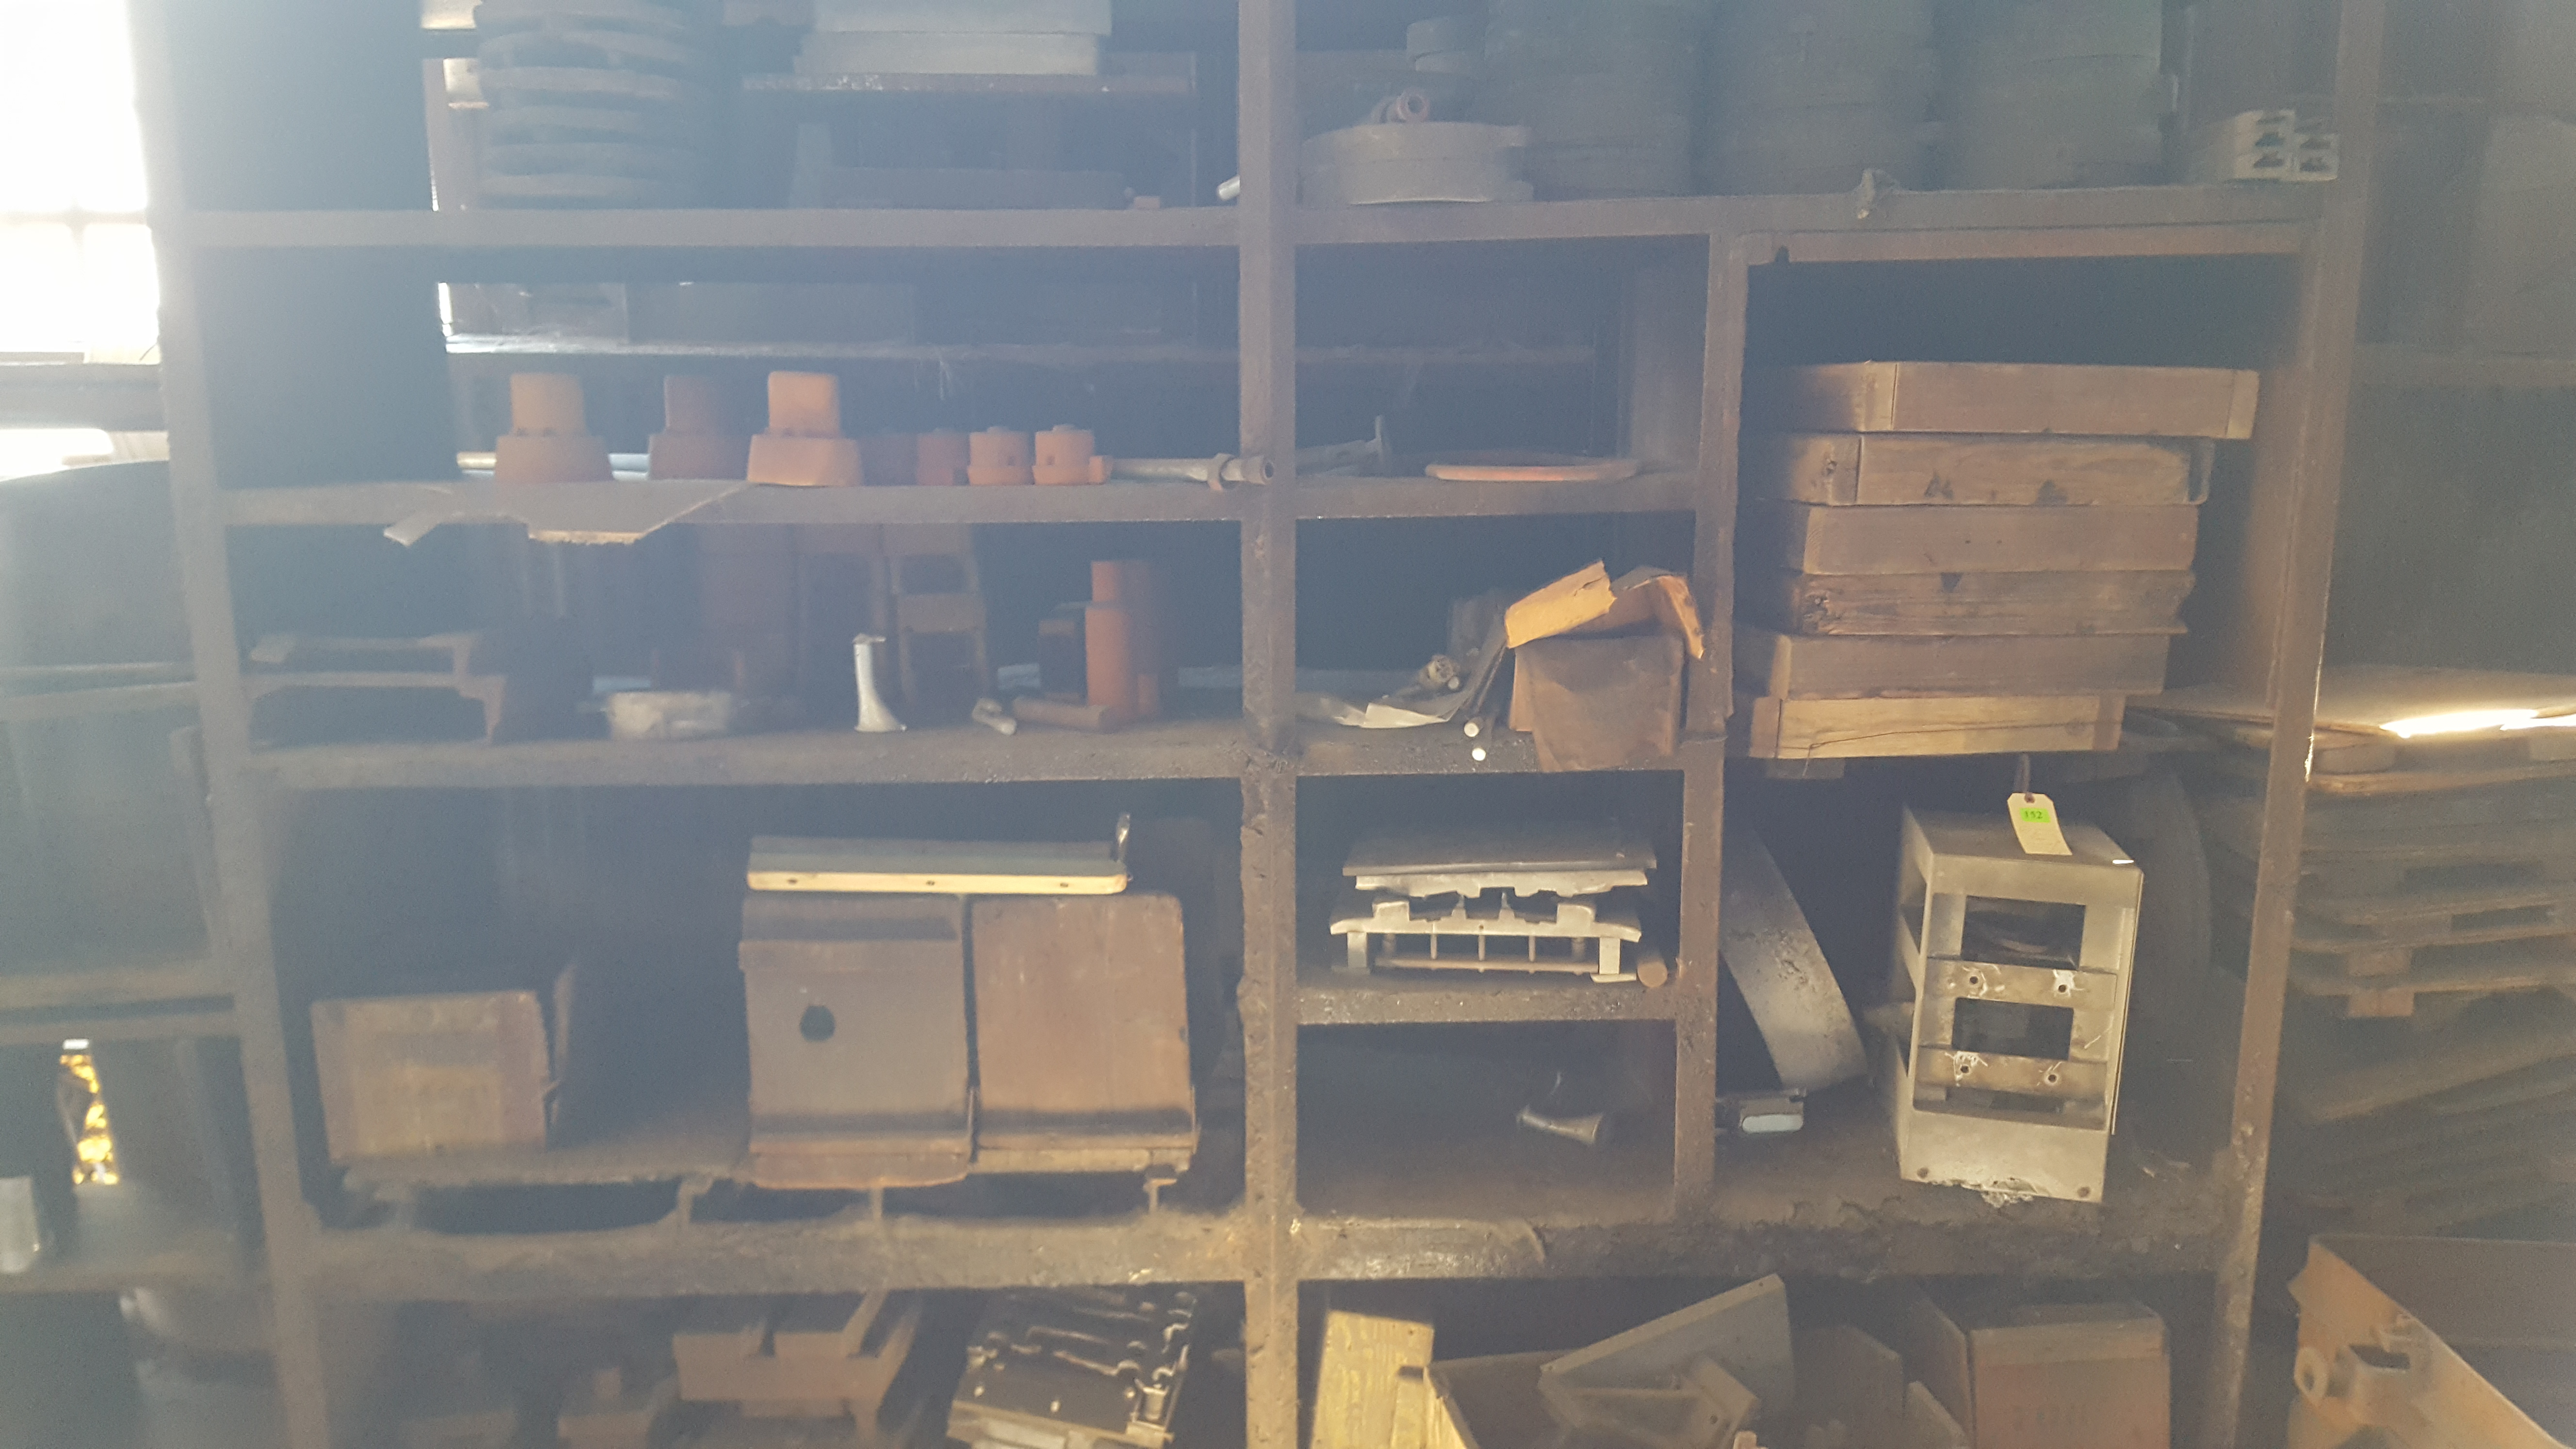 Lot 152 - RACK WITH MOLDS, PARTS, CONTENTS